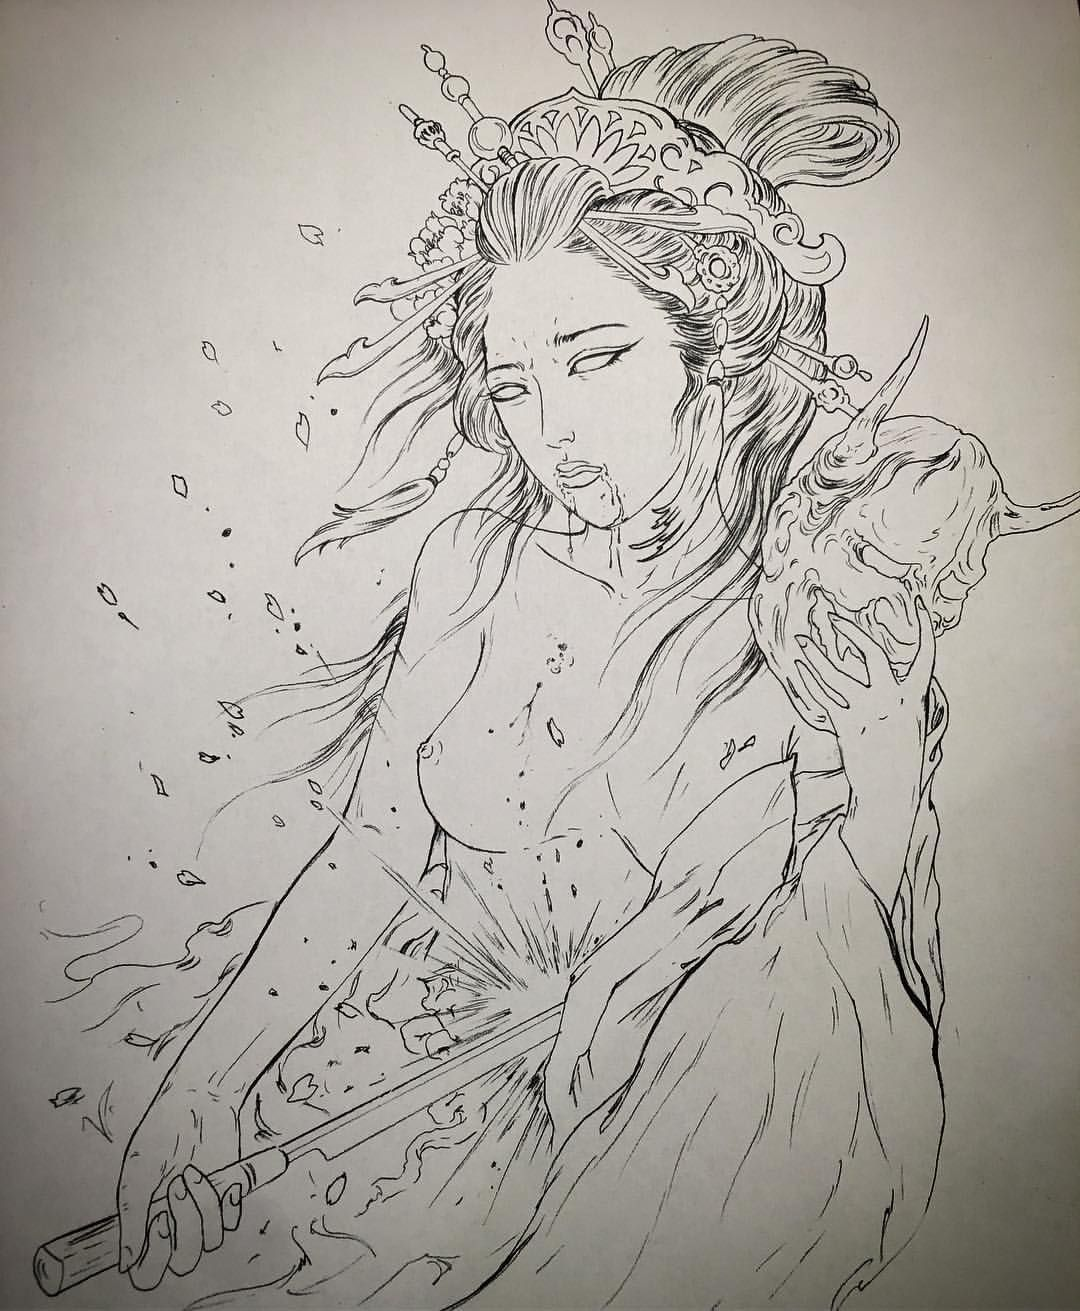 d5382f1c1 #rdt #reddemon #reddemontattoos #tattoo #tattoos #art #geisha #japan #girl  #harakiri #sepukul #blood #sakura #blossoms Can't wait to do this side  piece!!!